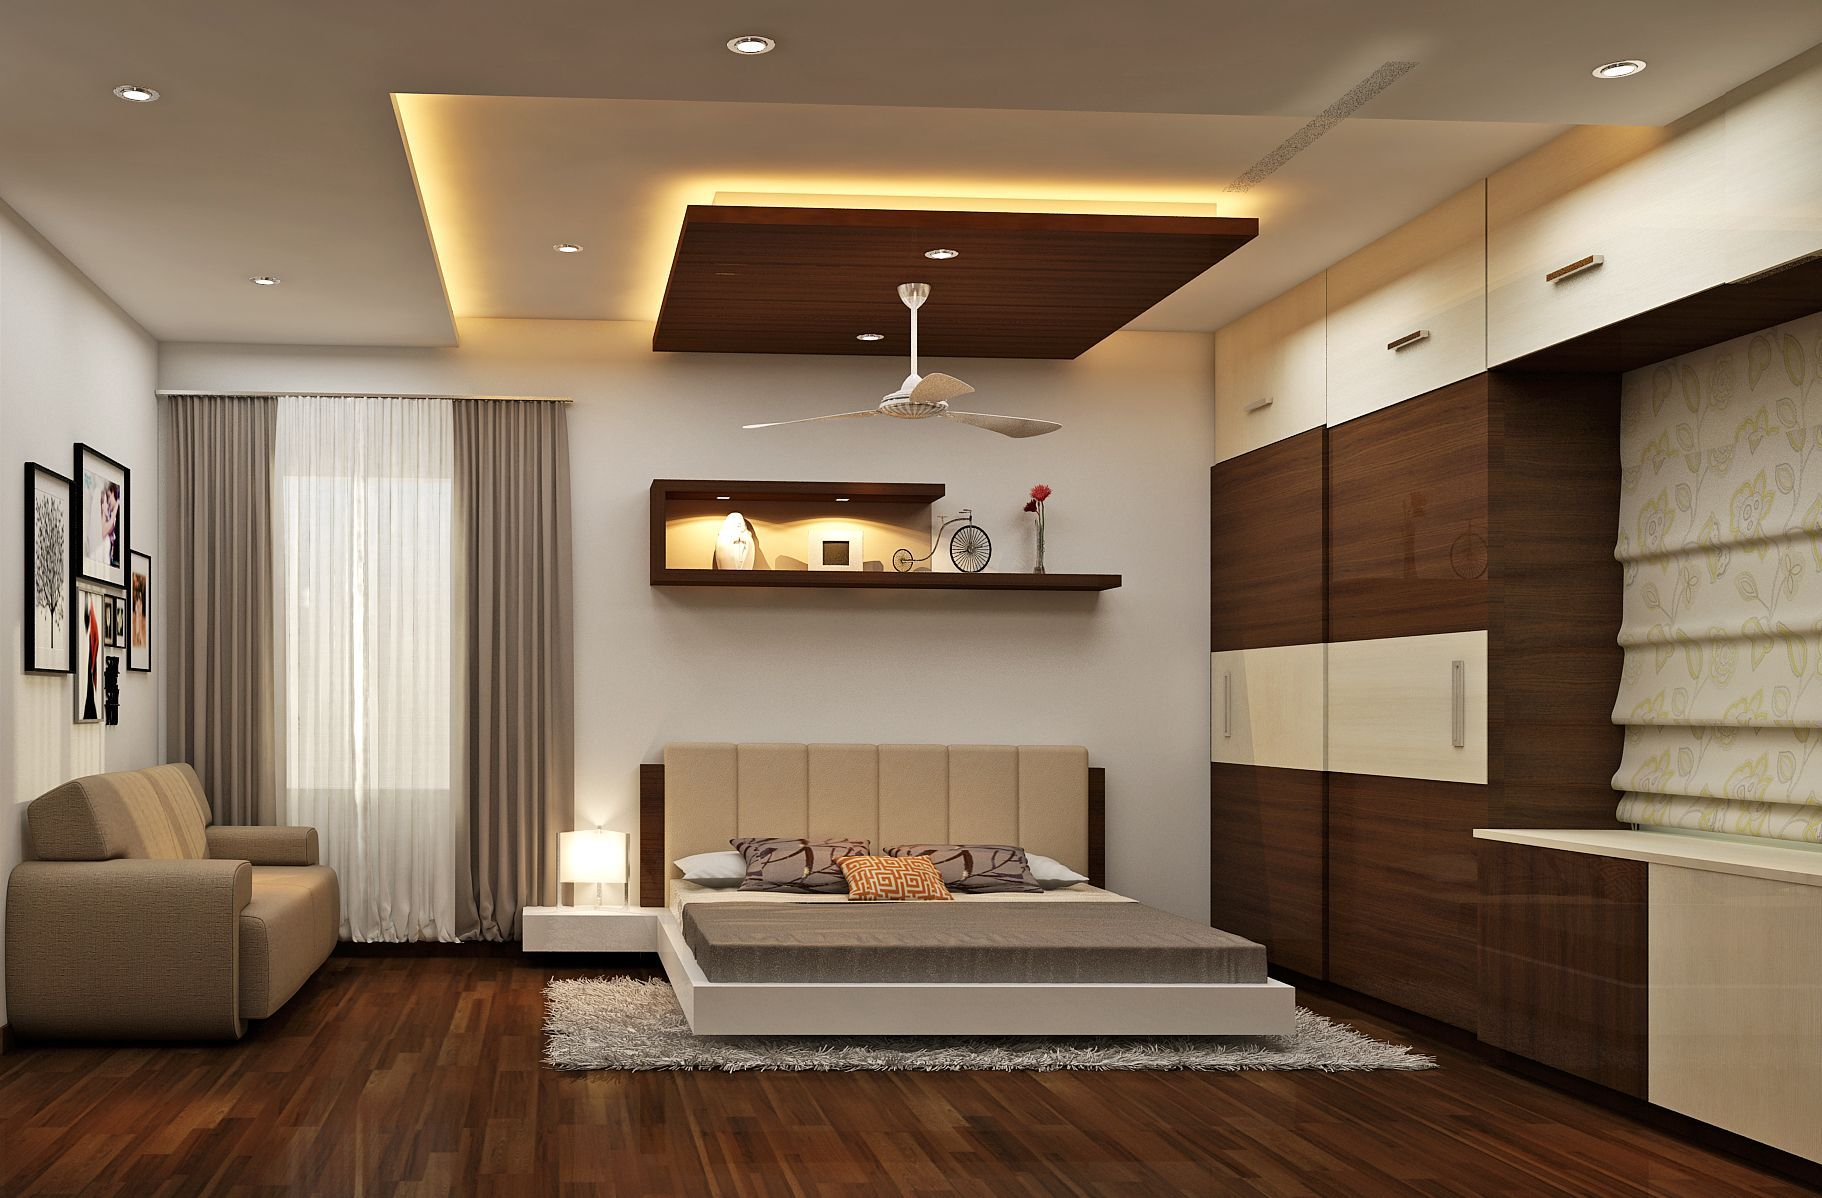 Pin By Rachuu On Modern House Design Bedroom Pop Design Ceiling Design Bedroom Bedroom False Ceiling Design Home pop design bedroom images